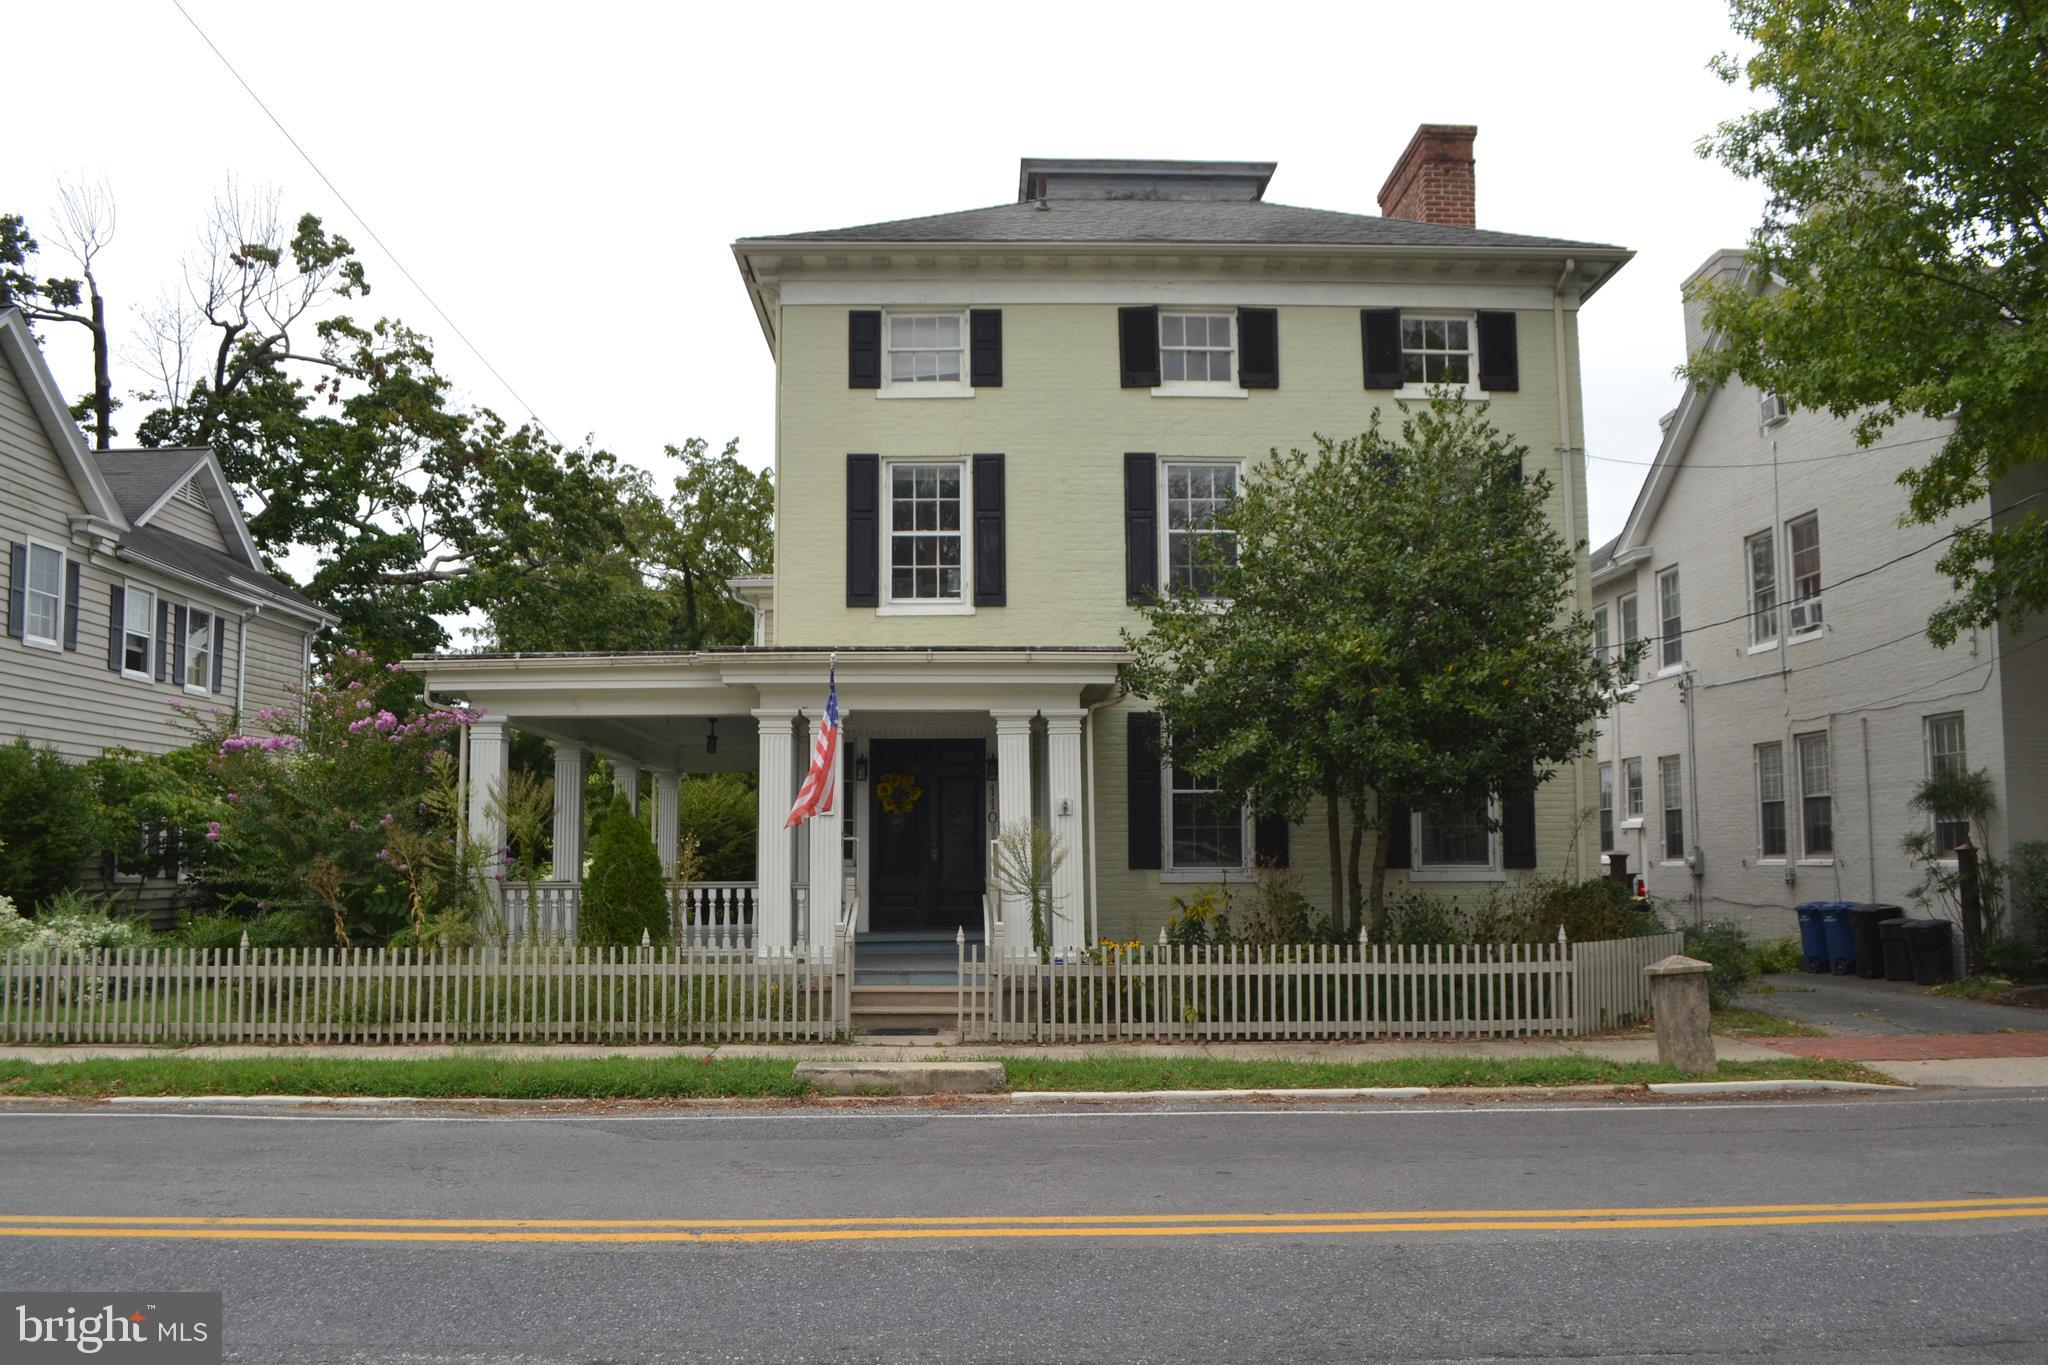 110 S LIBERTY STREET, CENTREVILLE, MD 21617